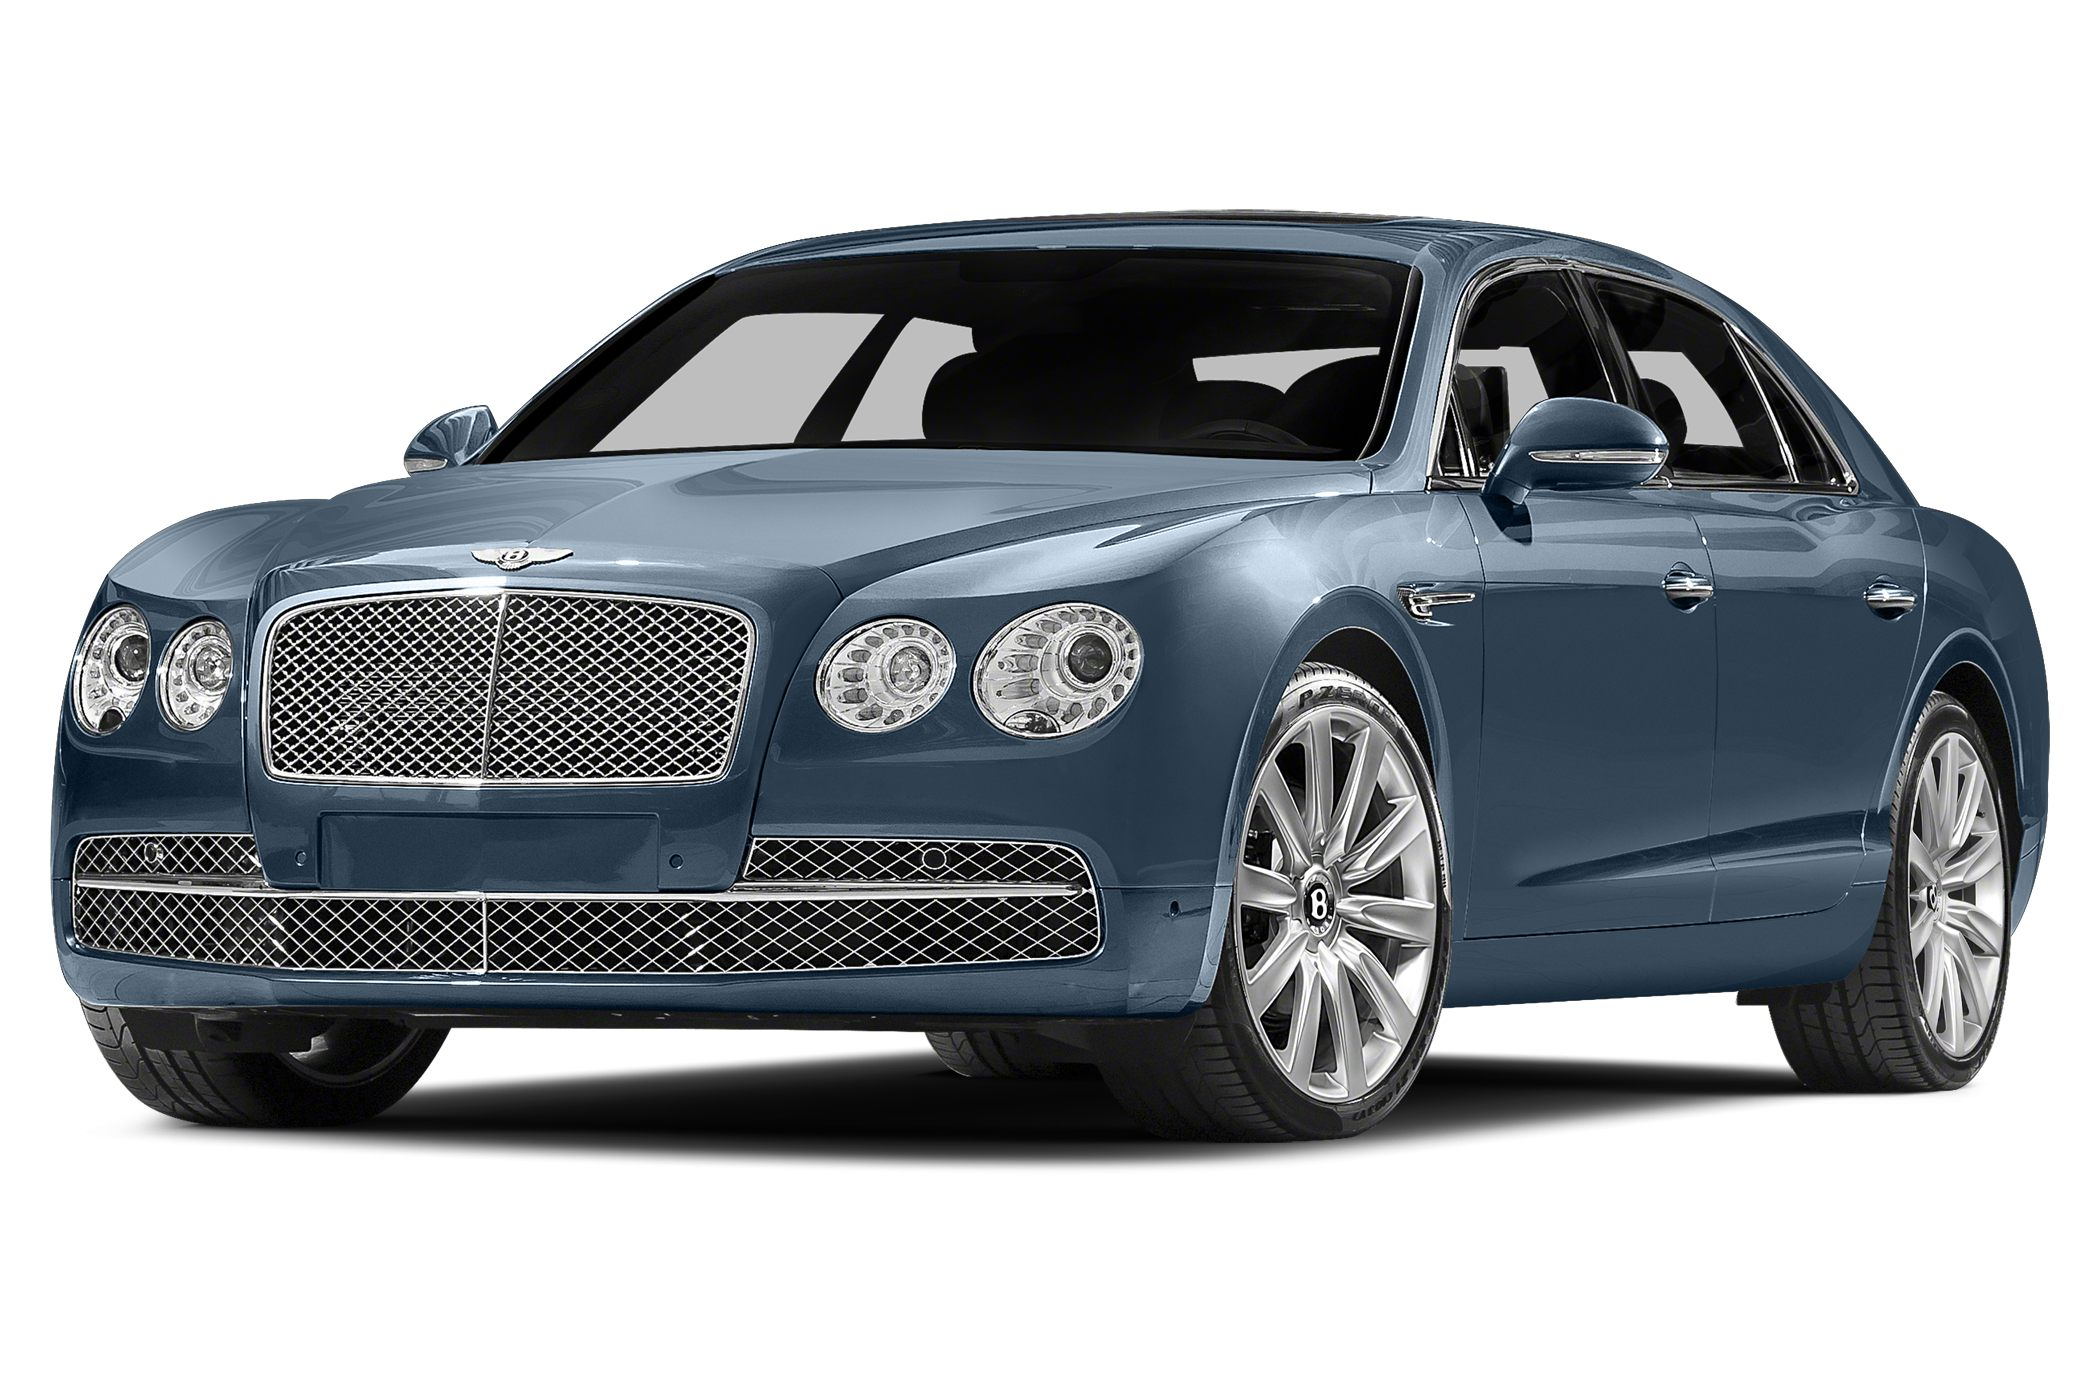 2015 Bentley Flying Spur W12 Sedan for sale in Miami for $243,865 with 18 miles